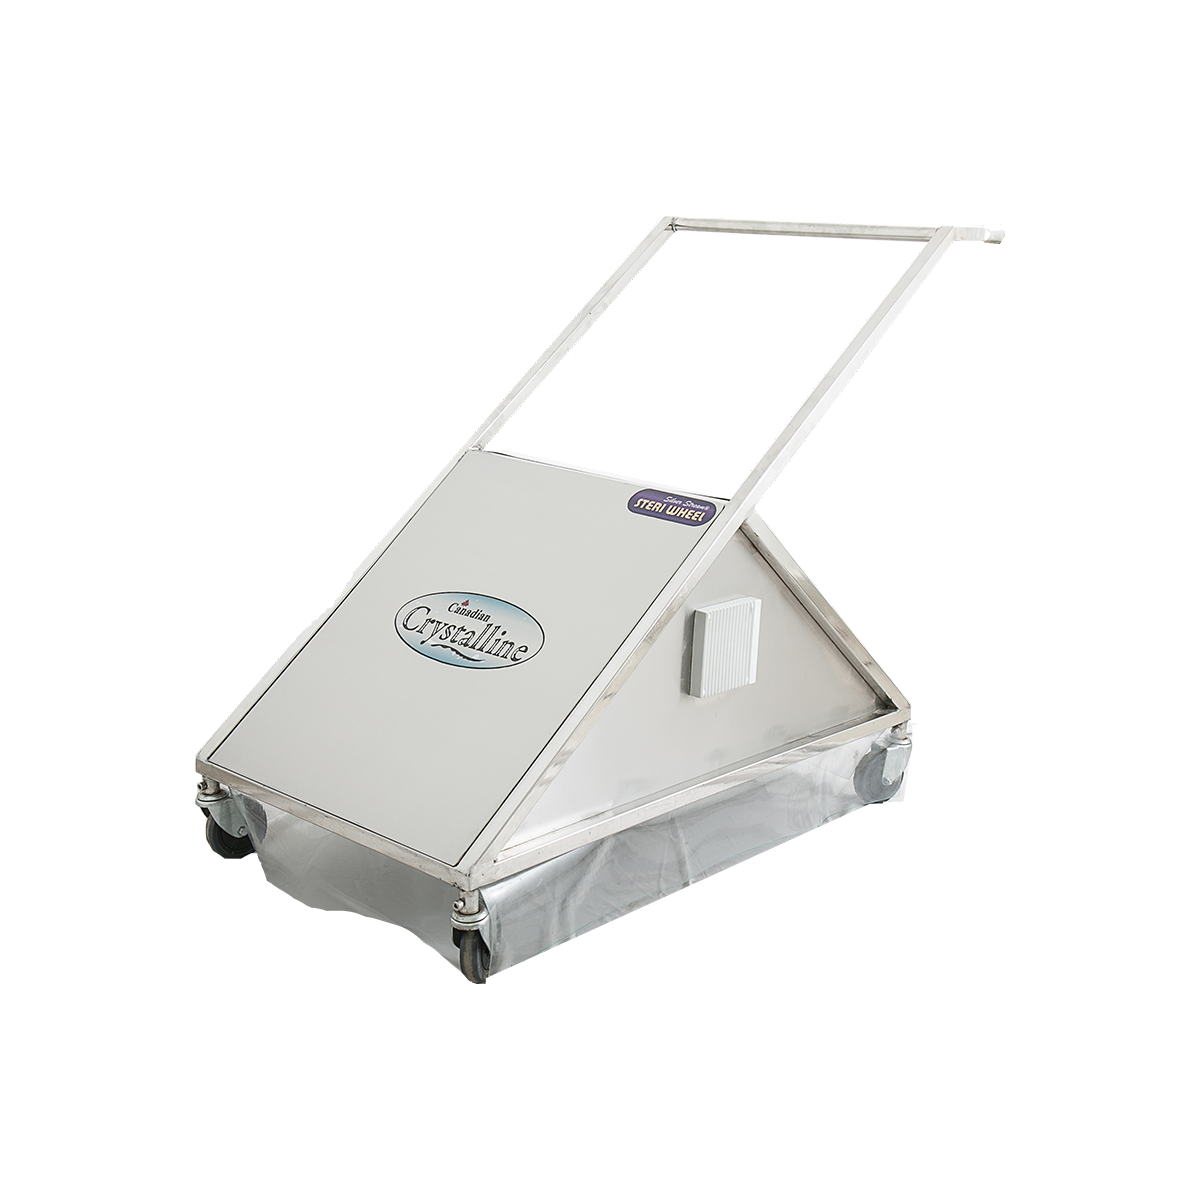 The Silver Stream® Steri Wheel which is a mobile disinfection unit on wheels disinfects the surface of hospital floor with a width of 2 or 3 feet. The radiation from this unit are enormously powerful and kills anything in its path. The unit can be moved up and down on designed paths by a Hospital maintenance personnel.